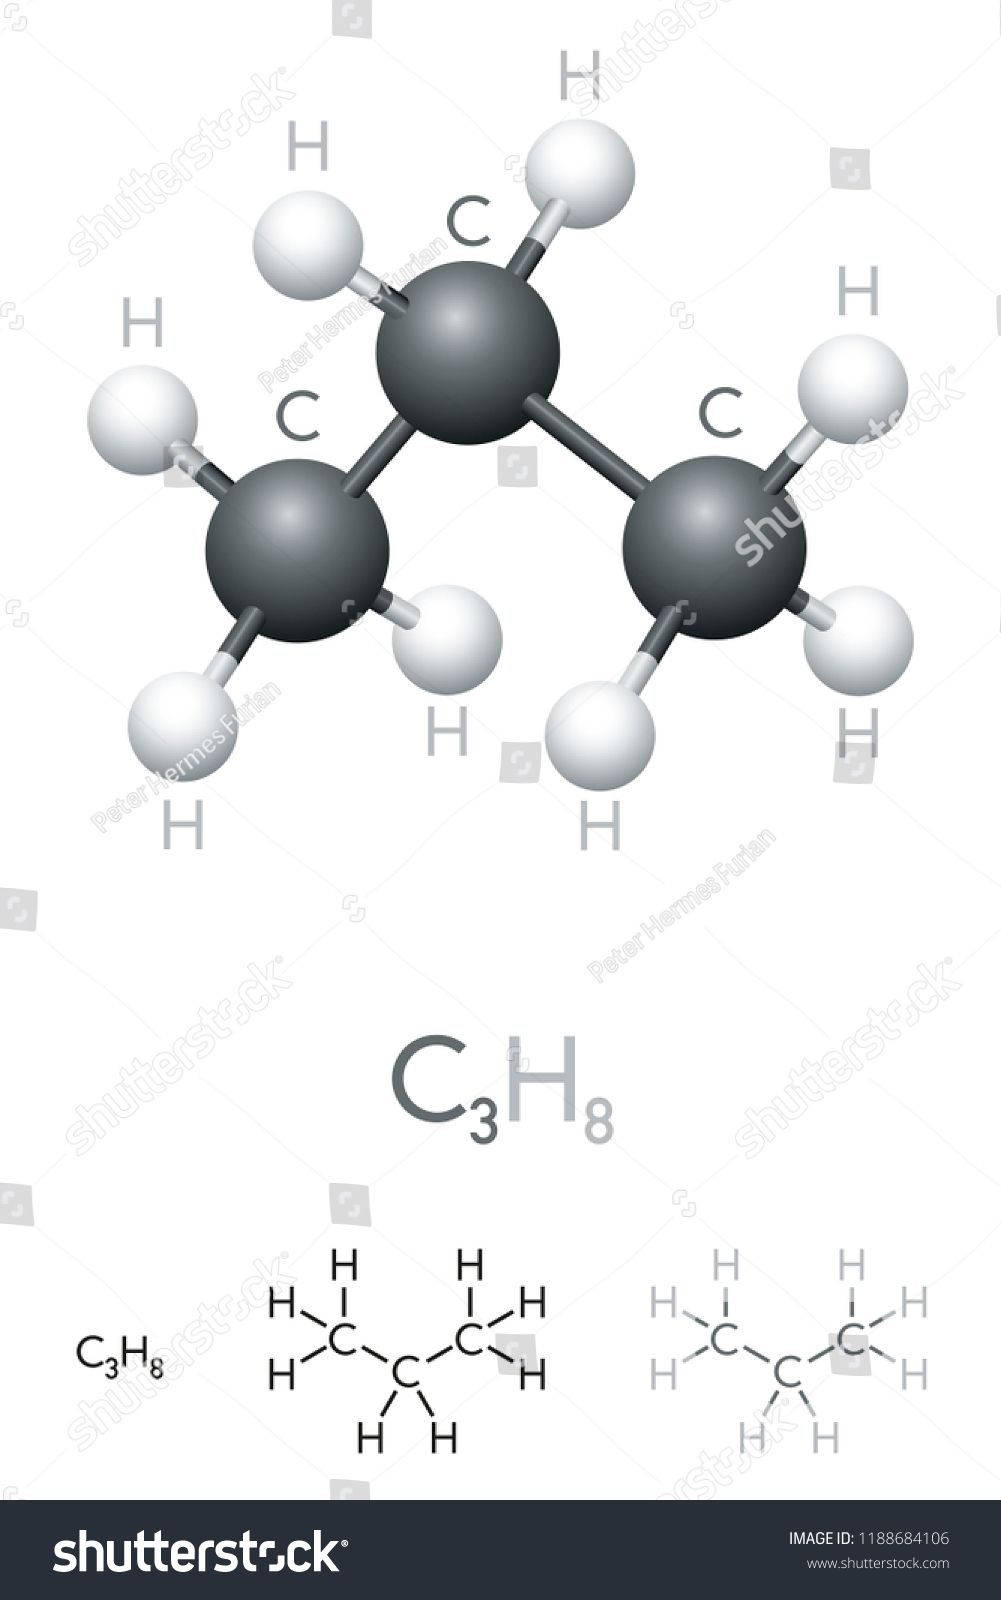 propane c3h8 molecule model and chemical formula organic chemical compound used as [ 1001 x 1600 Pixel ]